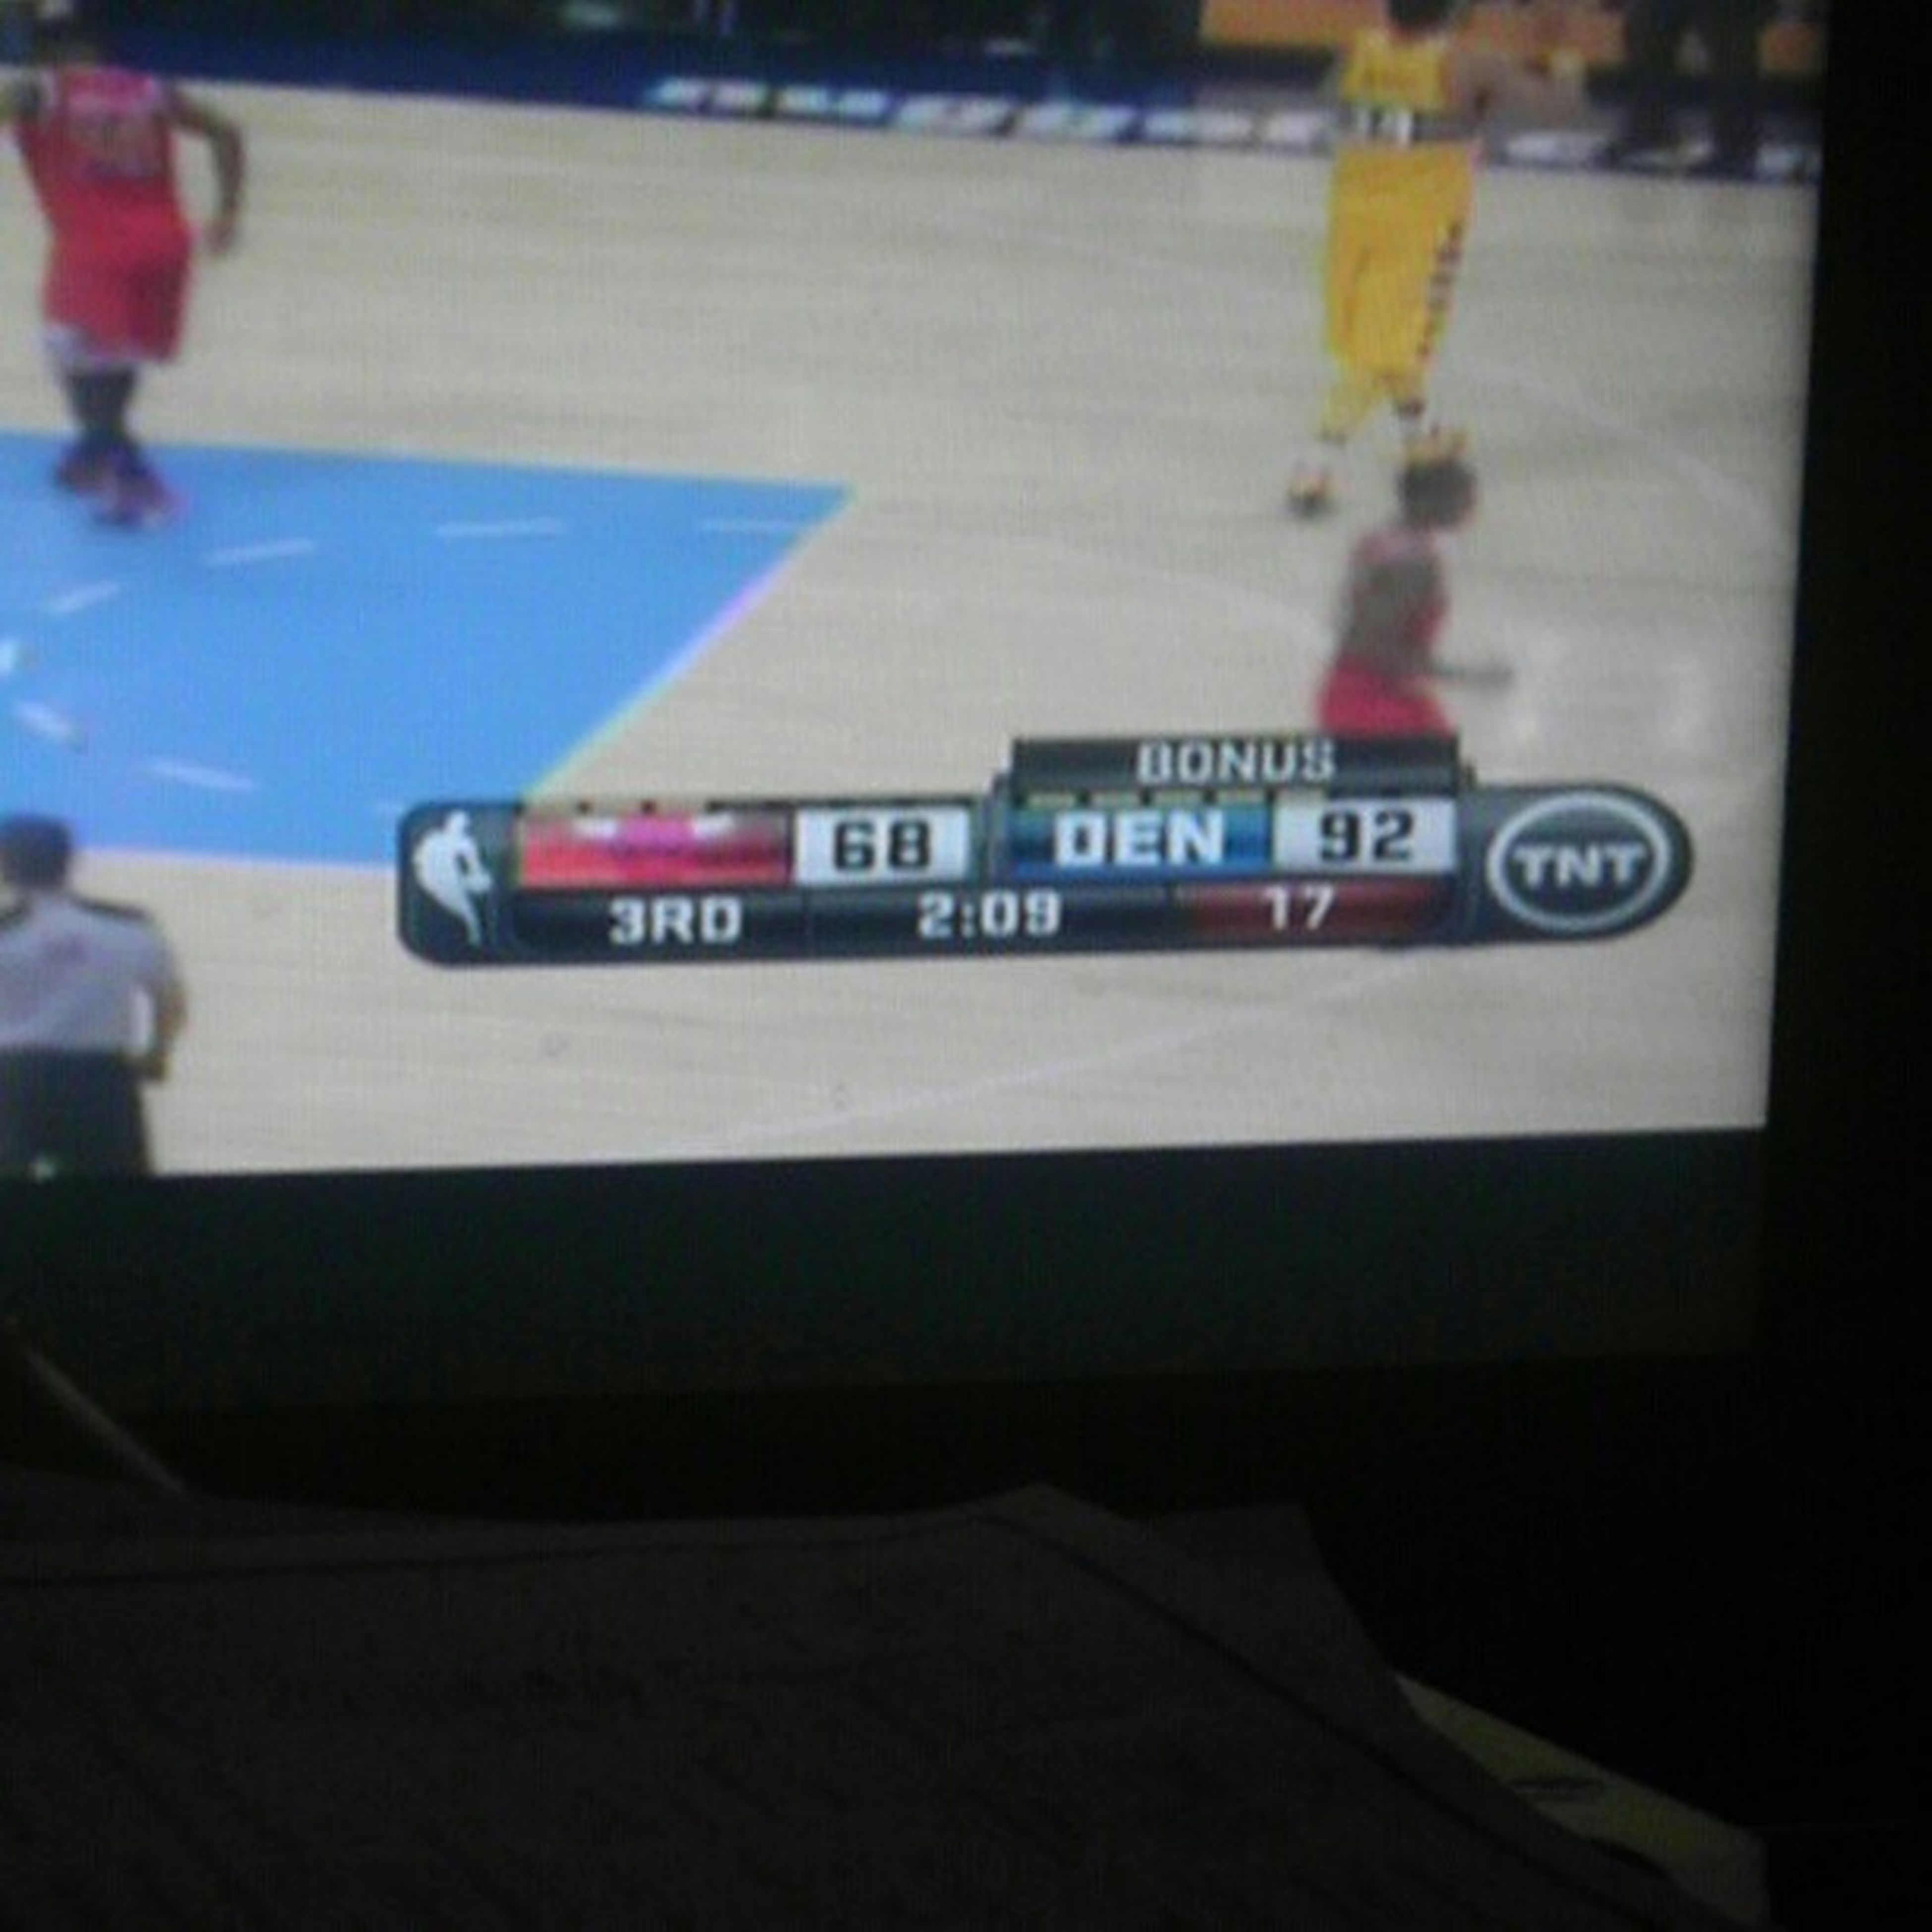 If this score gets any worse Nuggetsnation